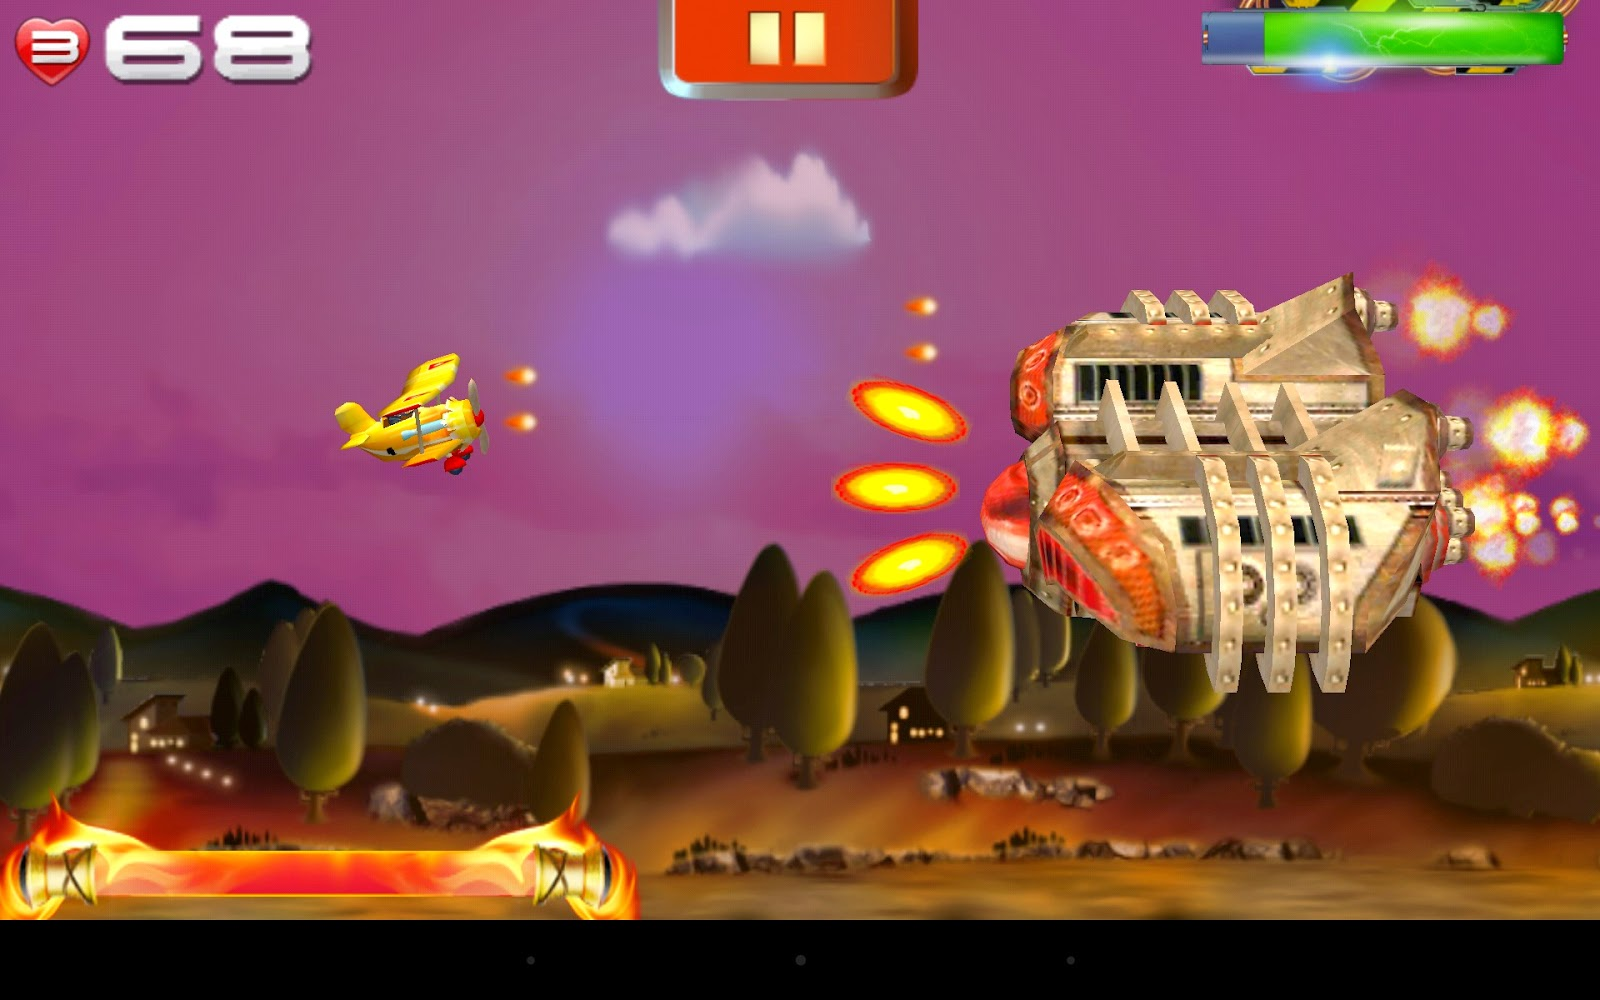 Dowload Big Air War